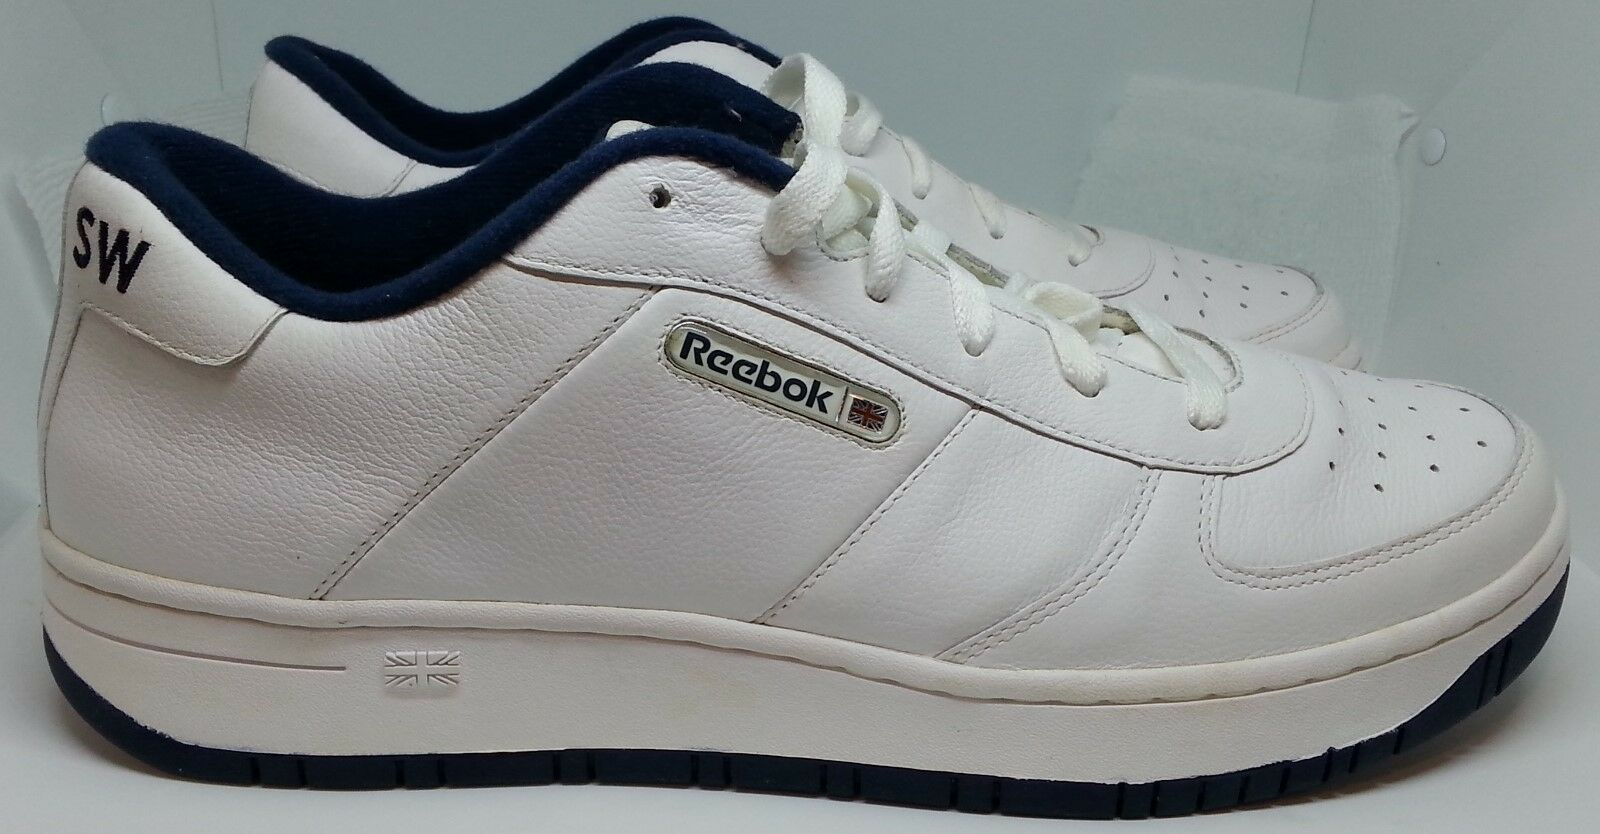 Reebok Classic SAMPLE PYE Athletic Running shoes White White--Men's Size 12.5 M